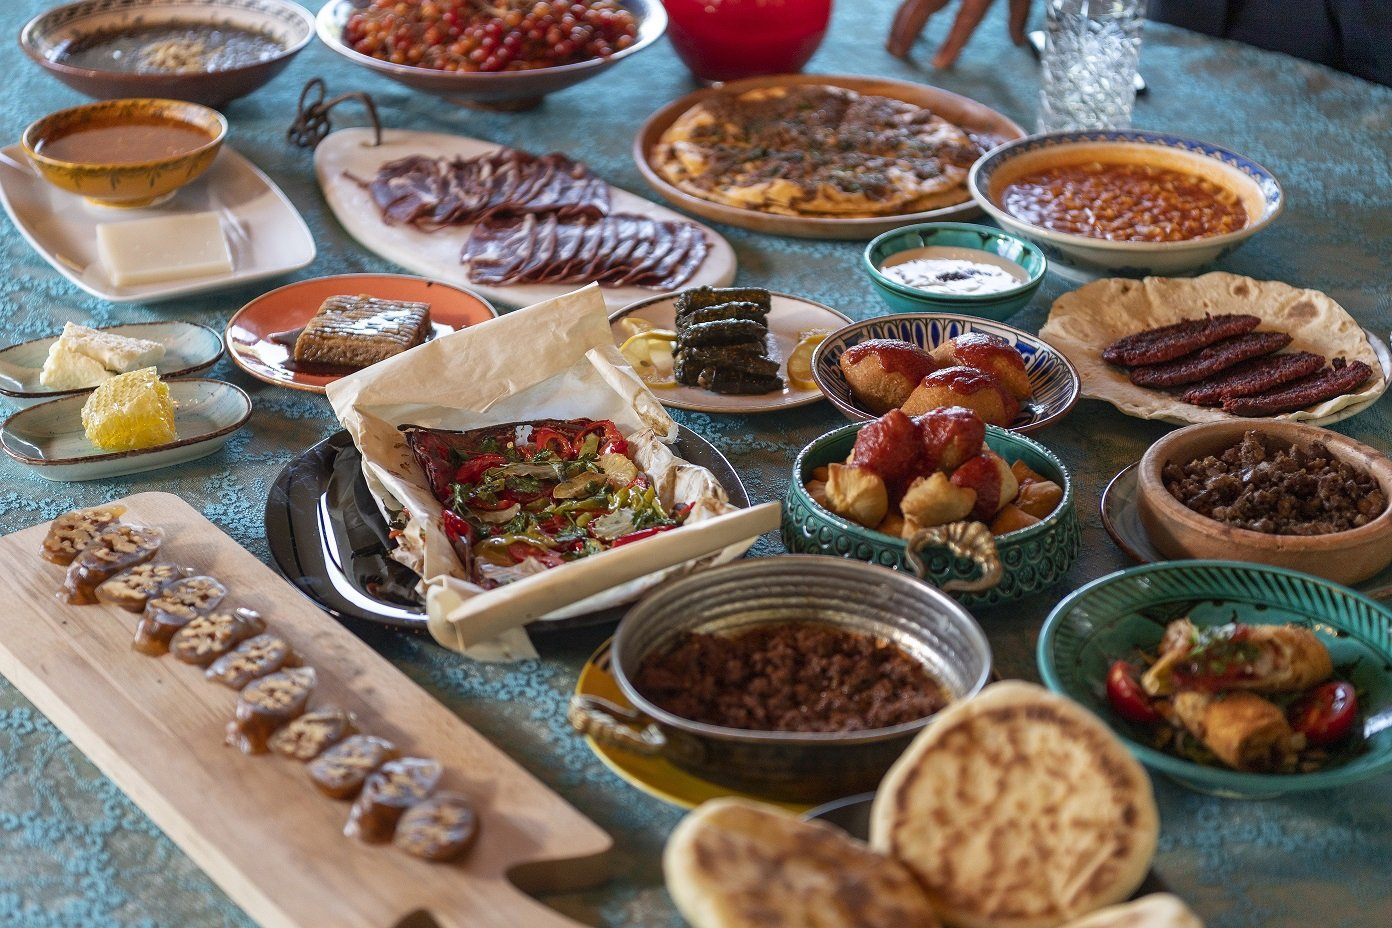 Kayseri has been added to UNESCO Creative Cities Network thanks to its rich cuisine. (AA Photo)